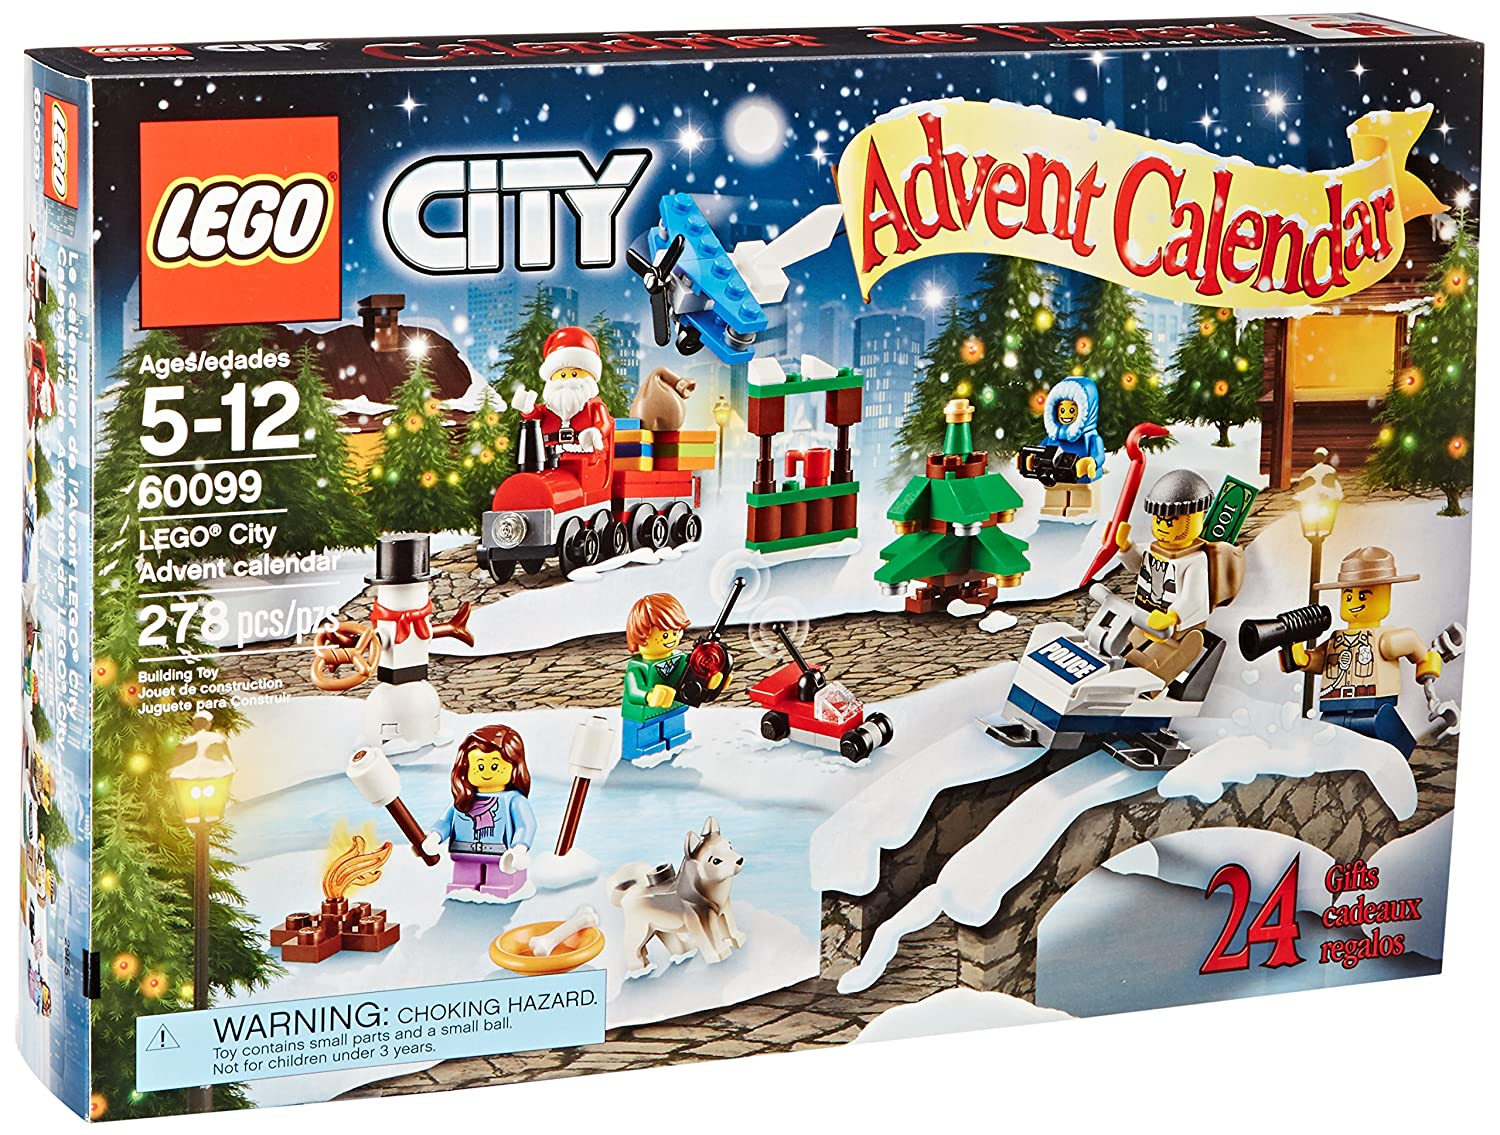 LEGO City Town 60099 Advent Calendar Building Kit(Discontinued by manufacturer) by LEGO 6100393